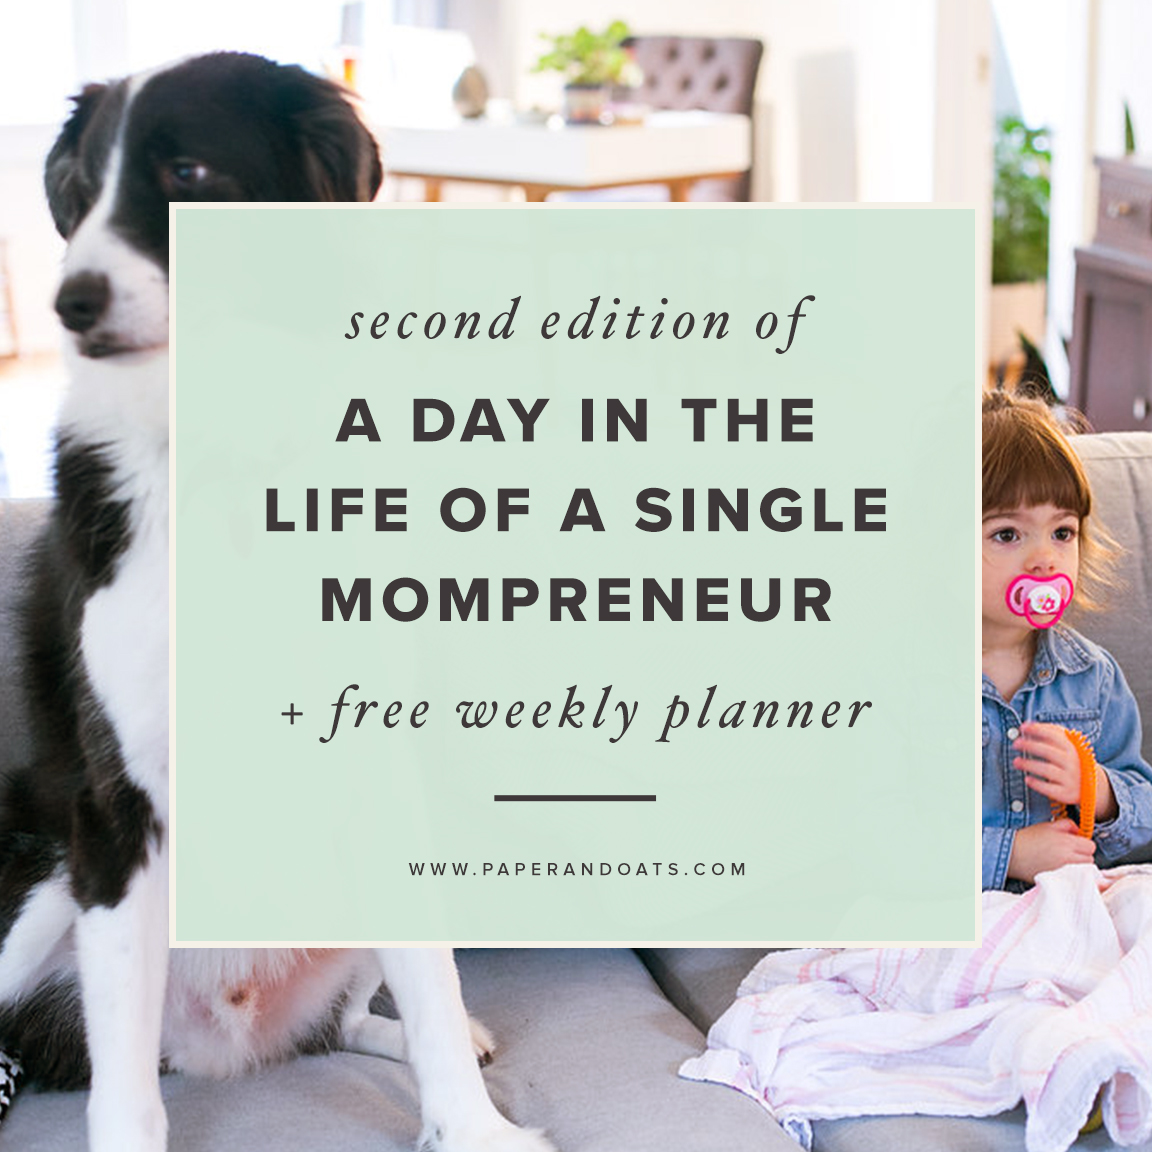 Day in the life of a single mompreneur - second edition (+ free weekly planner download!) - from Paper + Oats